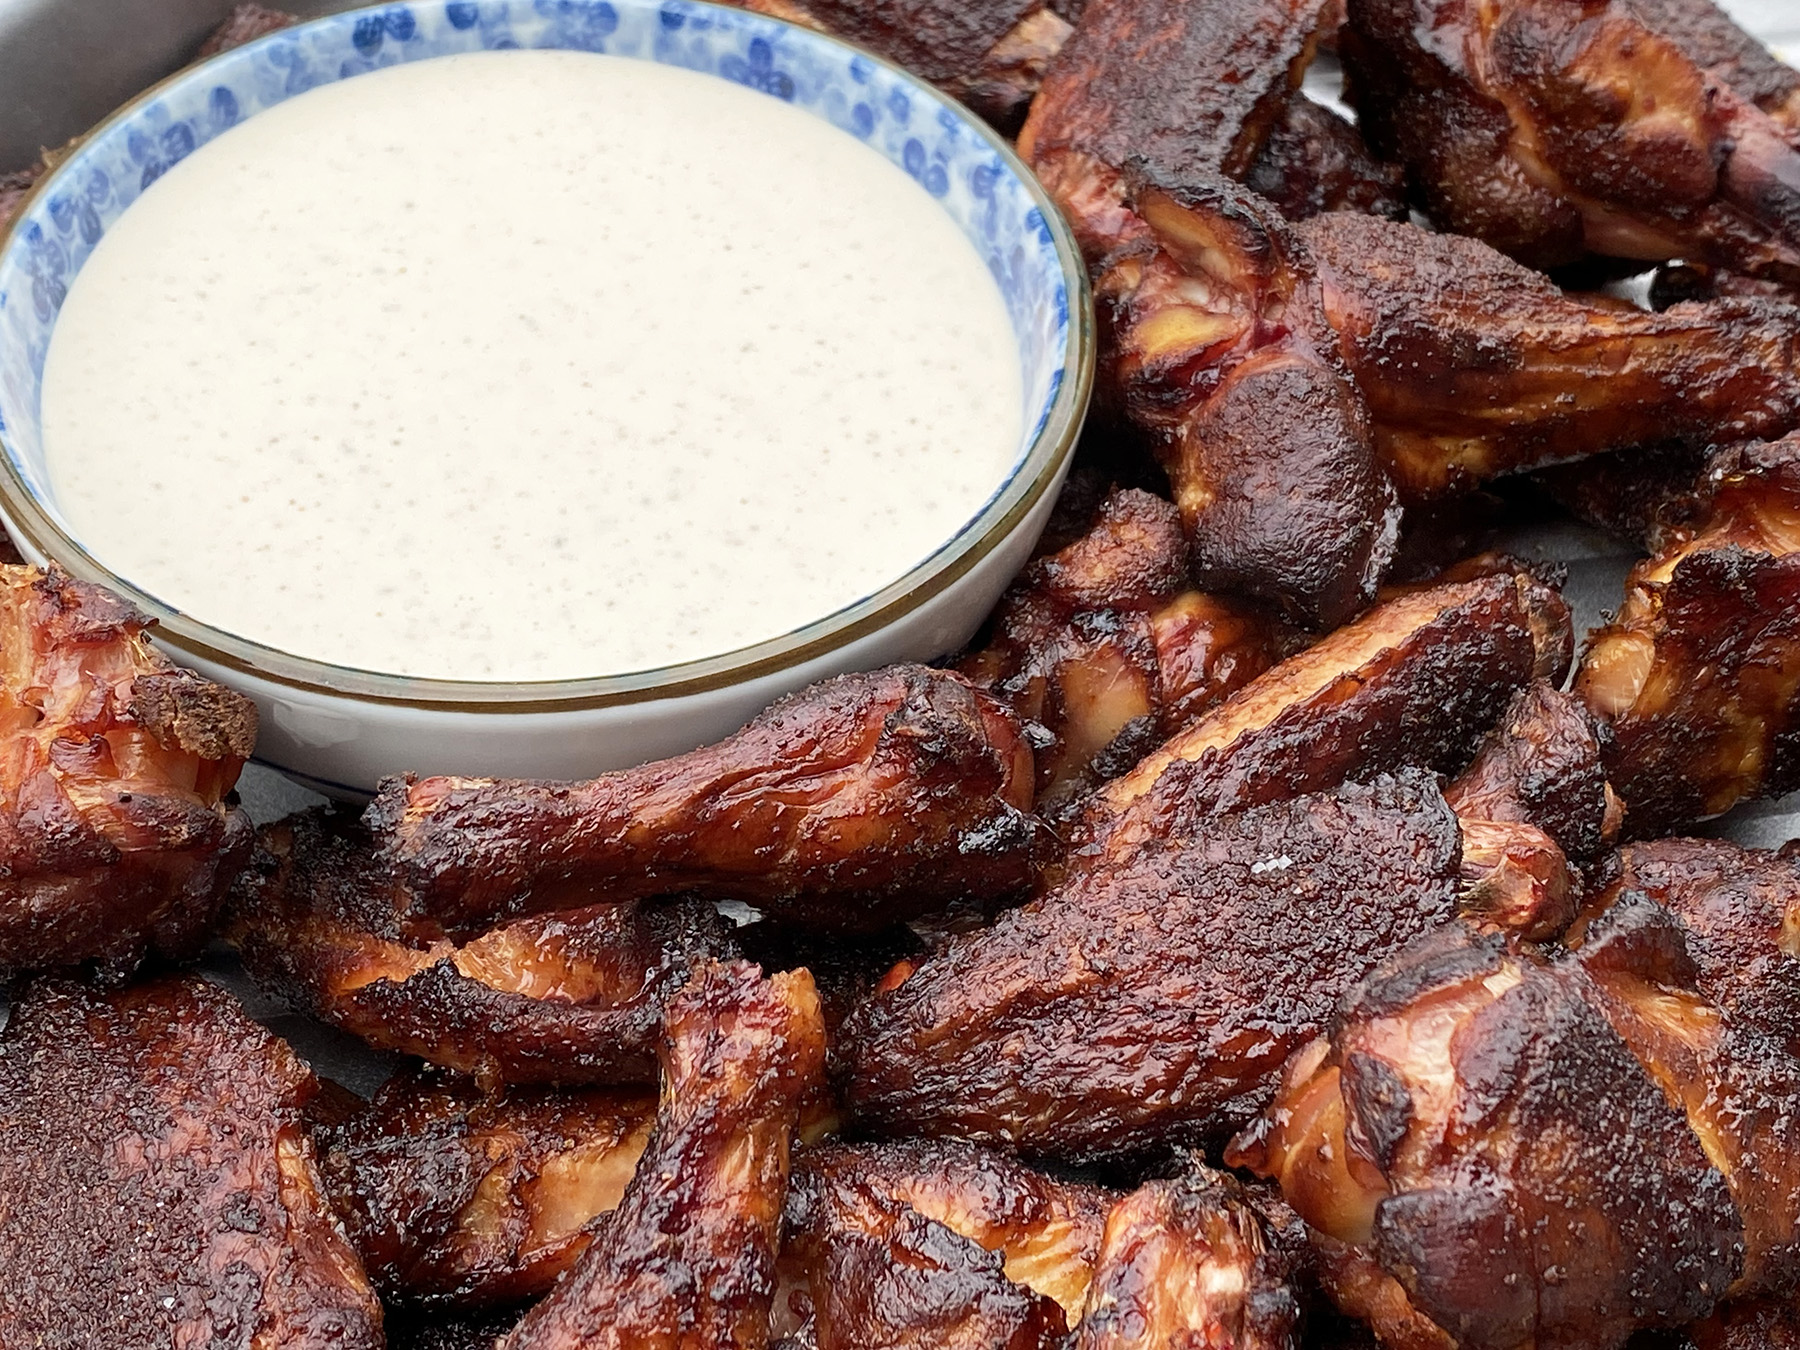 Alabama White Sauce (and Smoked Chicken Wings)